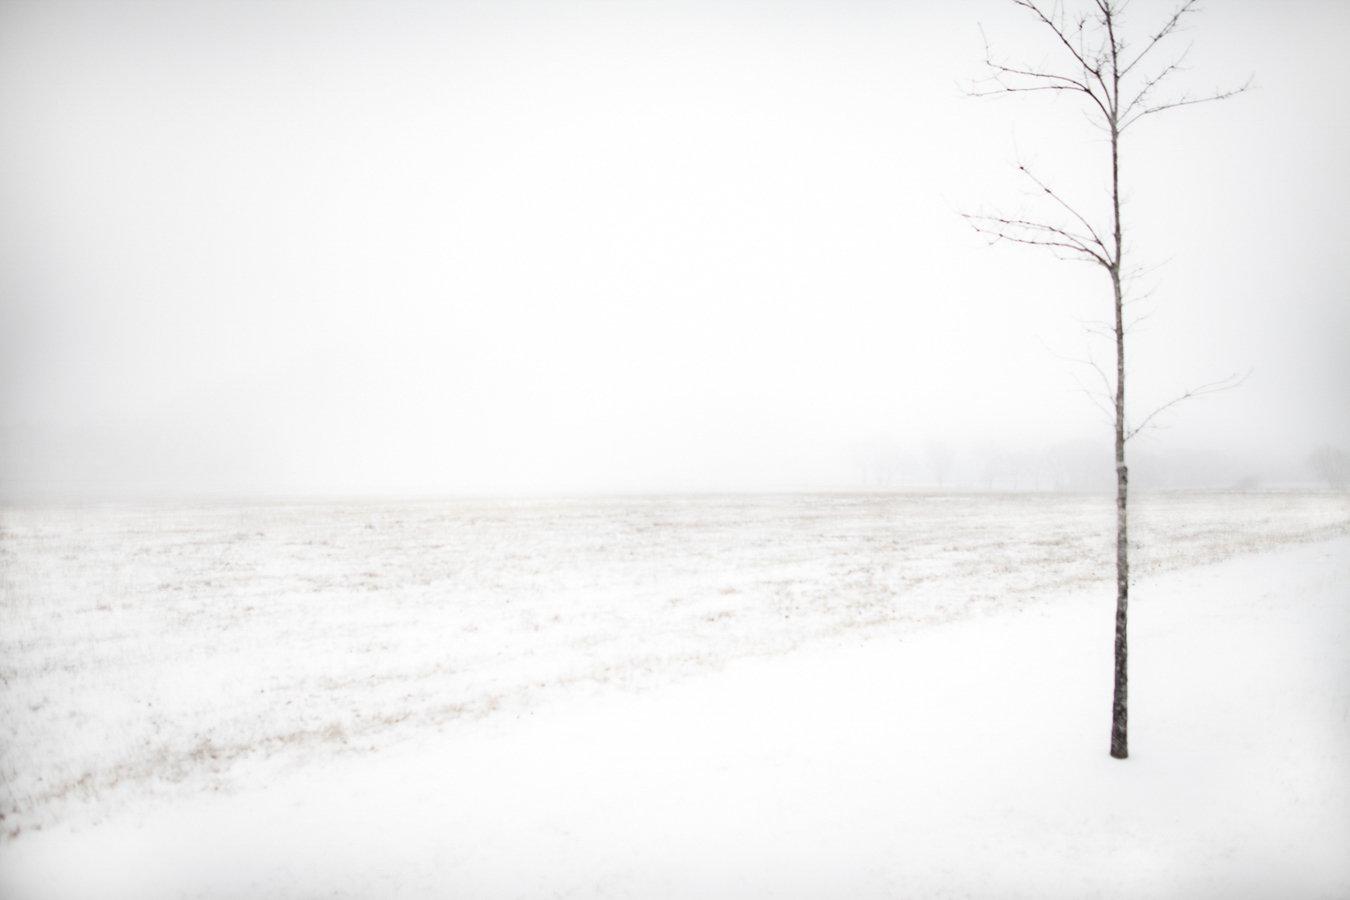 """Snow Tree"", 2009, Williamson County, Tennessee"